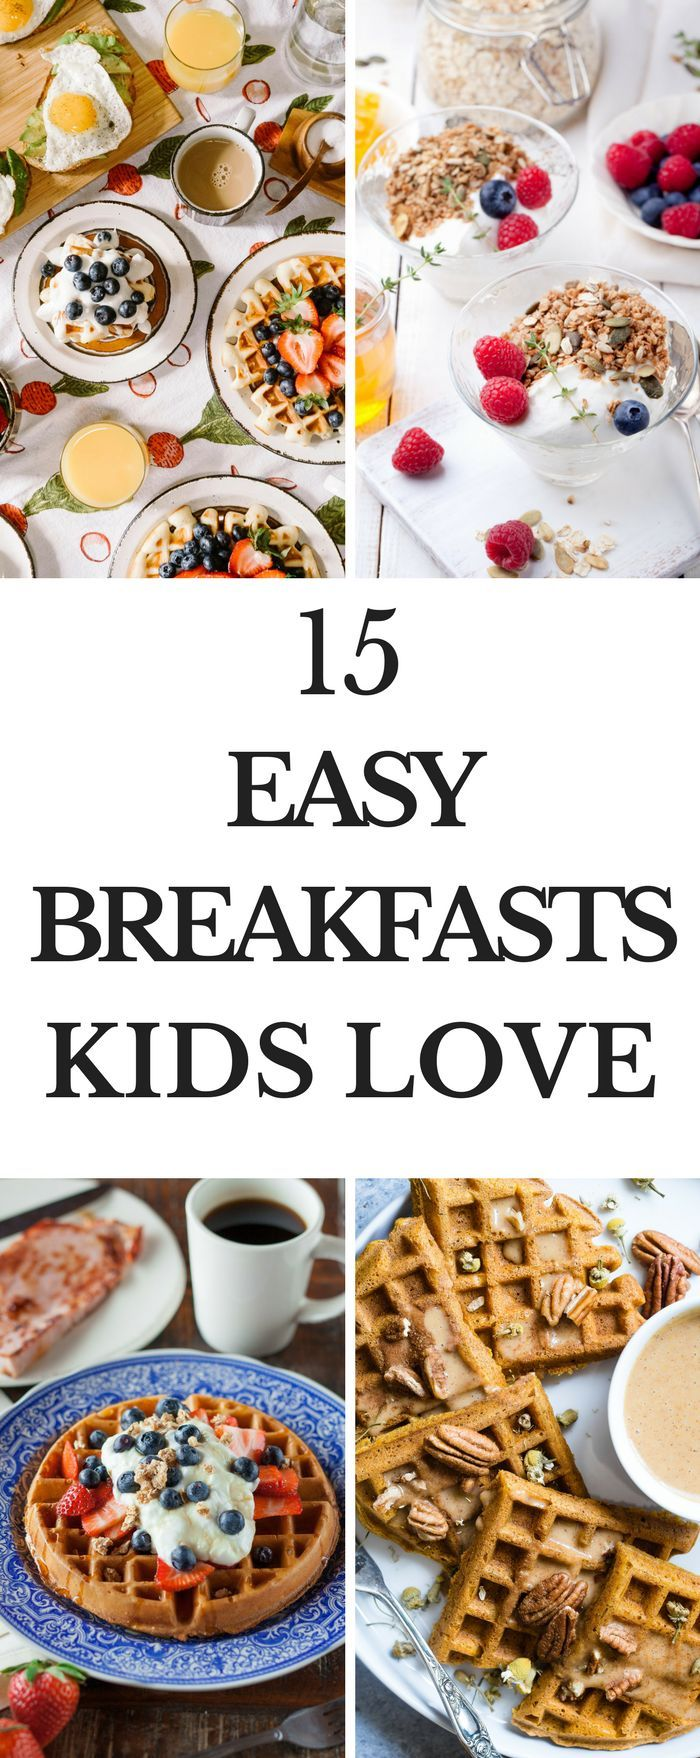 15 Breakfast Ideas Looking for breakfast ideas? Whether you're looking for healthy breakfasts that are easy to prepare, or make-ahead breakfasts to make for a crowd you're covered on this list of breakfast recipes! From quick breakfasts for kids to breakfast casseroles you'll find something here! #breakfastrecipes #recipes